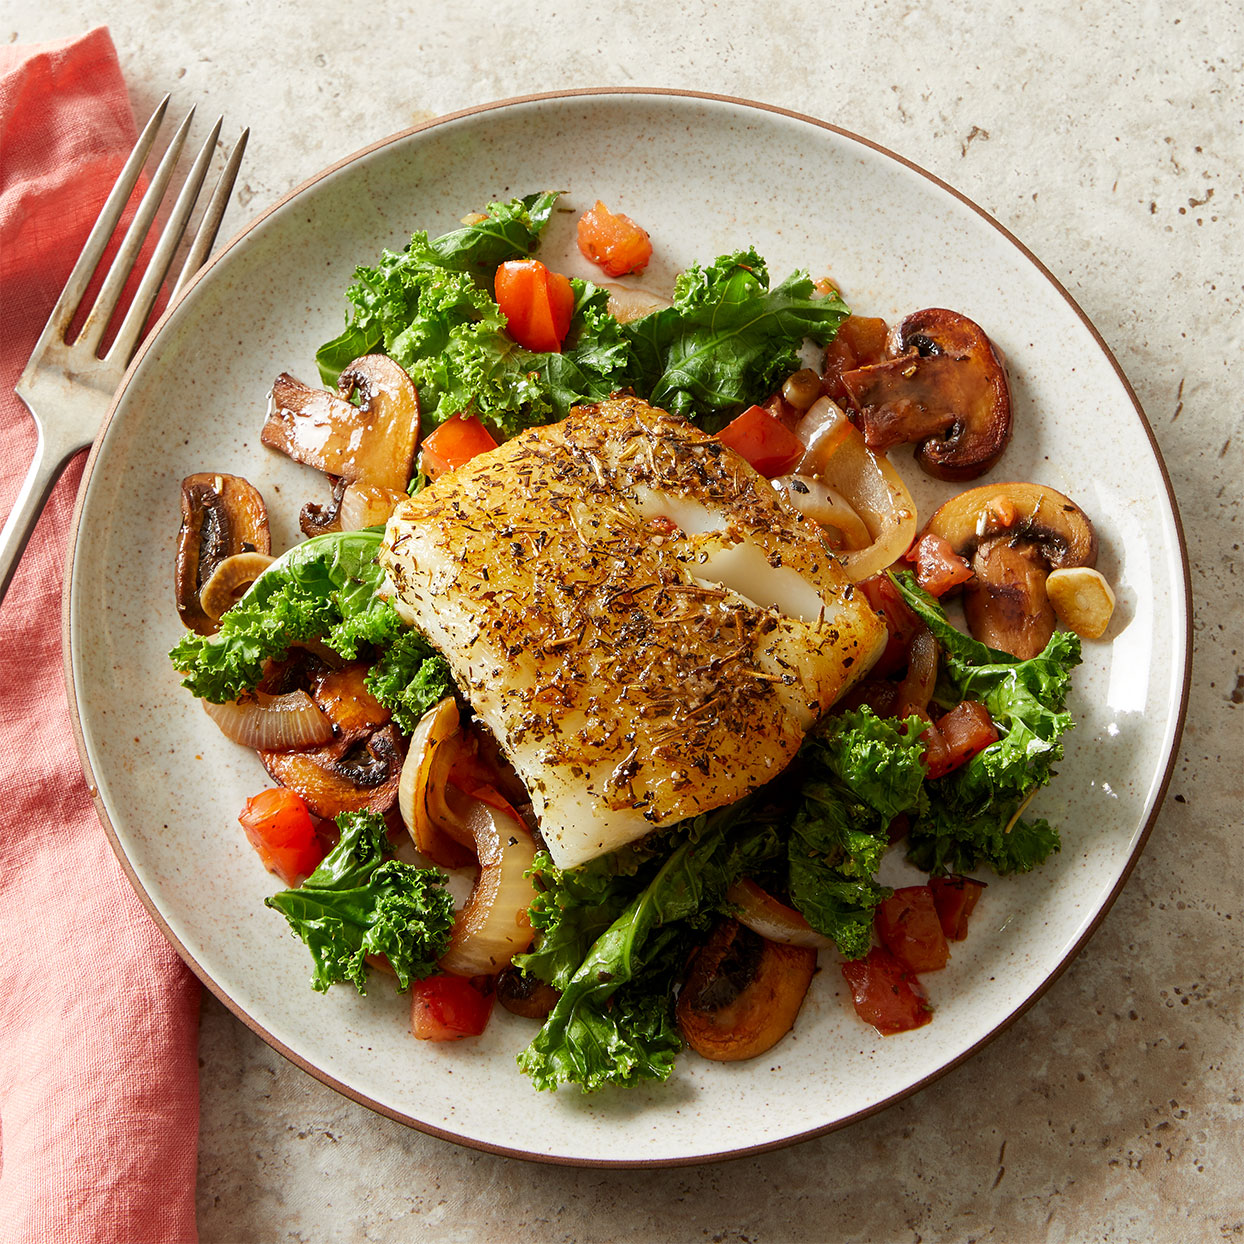 Herby Mediterranean Fish with Wilted Greens & Mushrooms